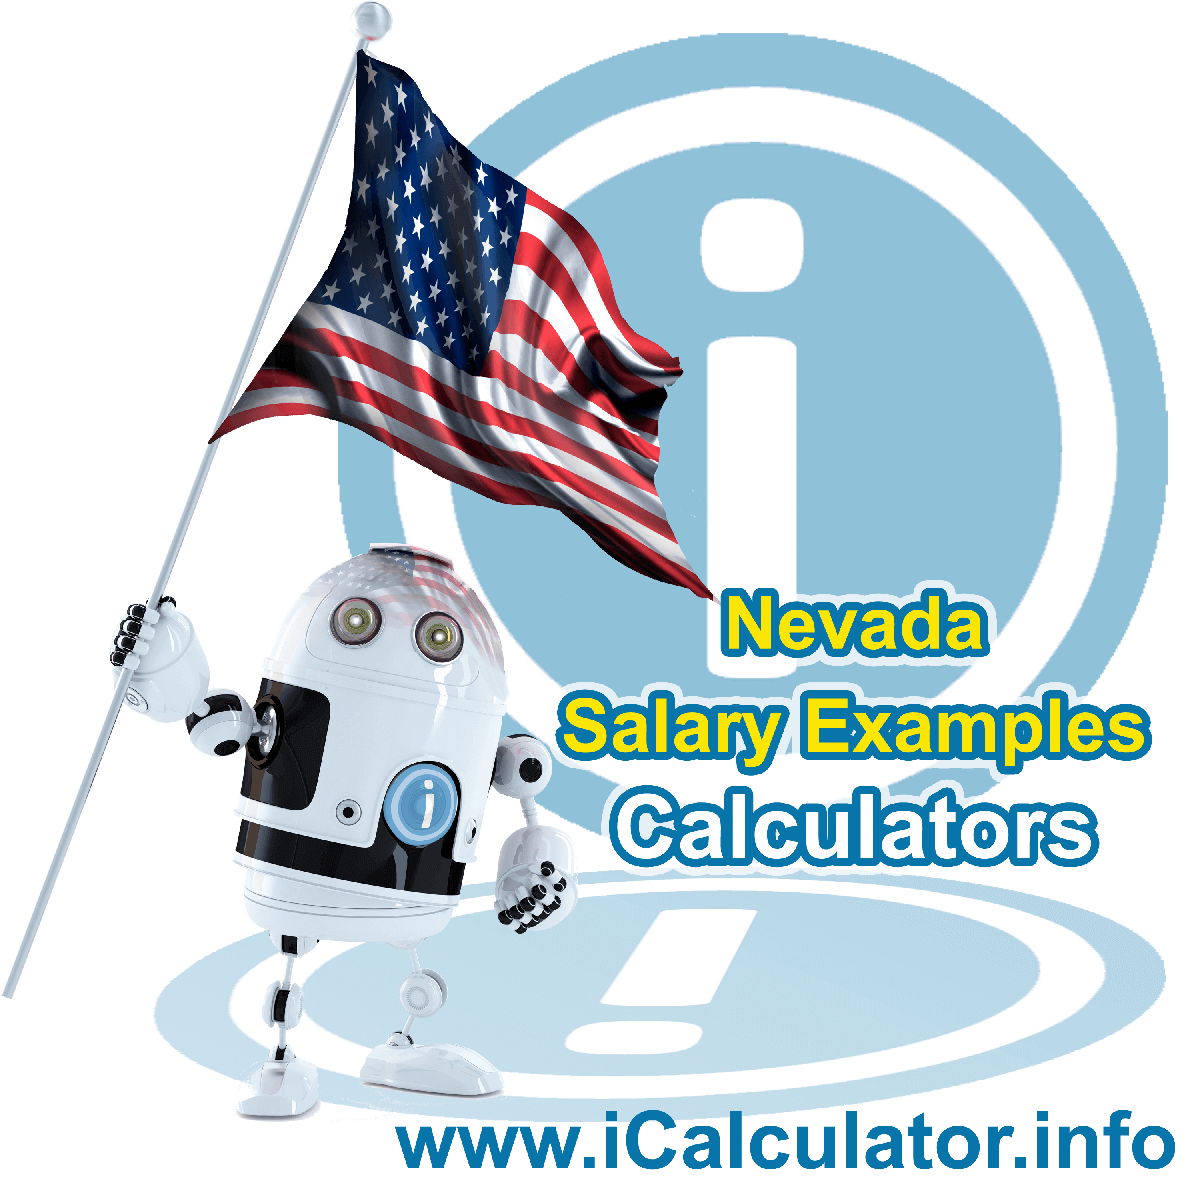 Nevada Salary Example for $120,000.00 in 2020 | iCalculator | $120,000.00 salary example for employee and employer paying Nevada State tincome taxes. Detailed salary after tax calculation including Nevada State Tax, Federal State Tax, Medicare Deductions, Social Security, Capital Gains and other income tax and salary deductions complete with supporting Nevada state tax tables